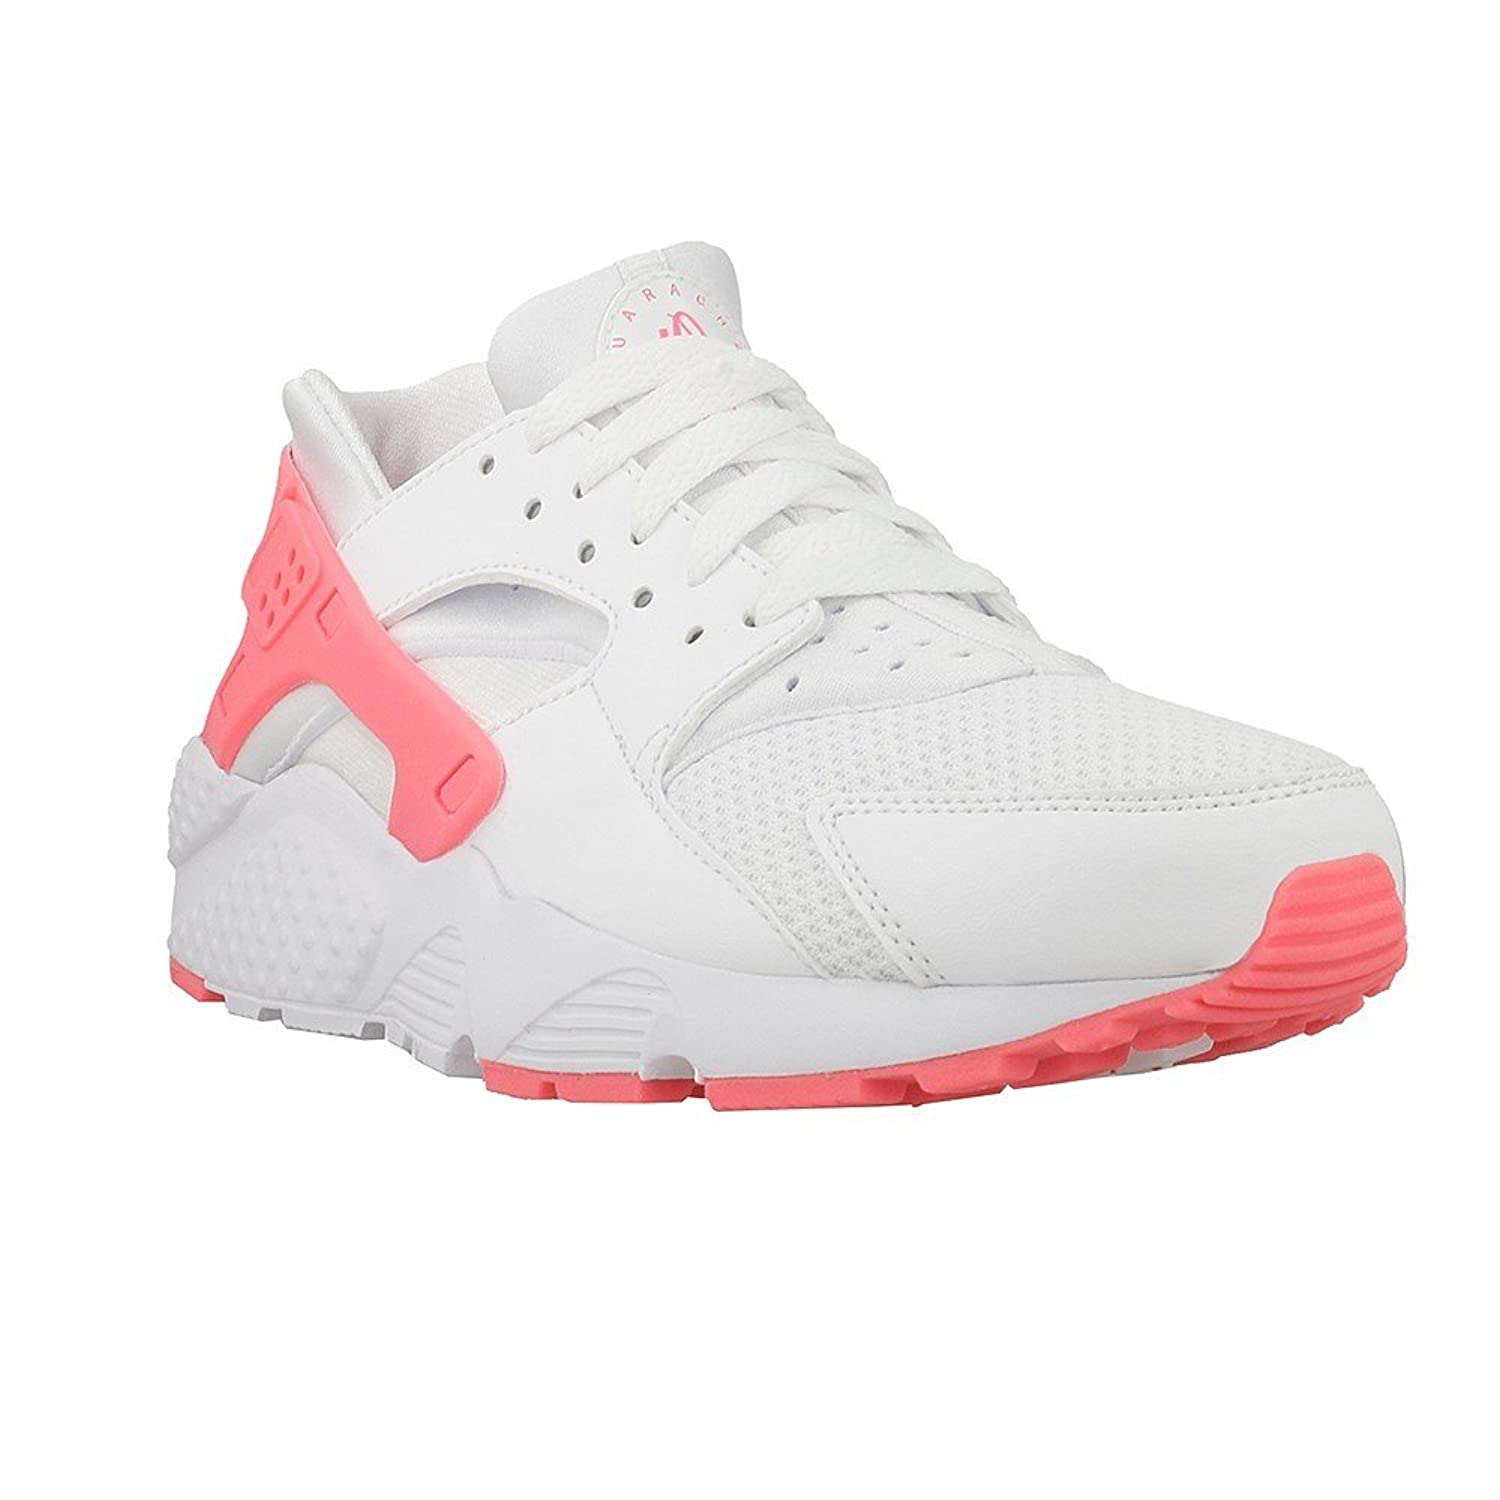 Nike Huarache Run SE Summit White/Summit White (Big Kid)